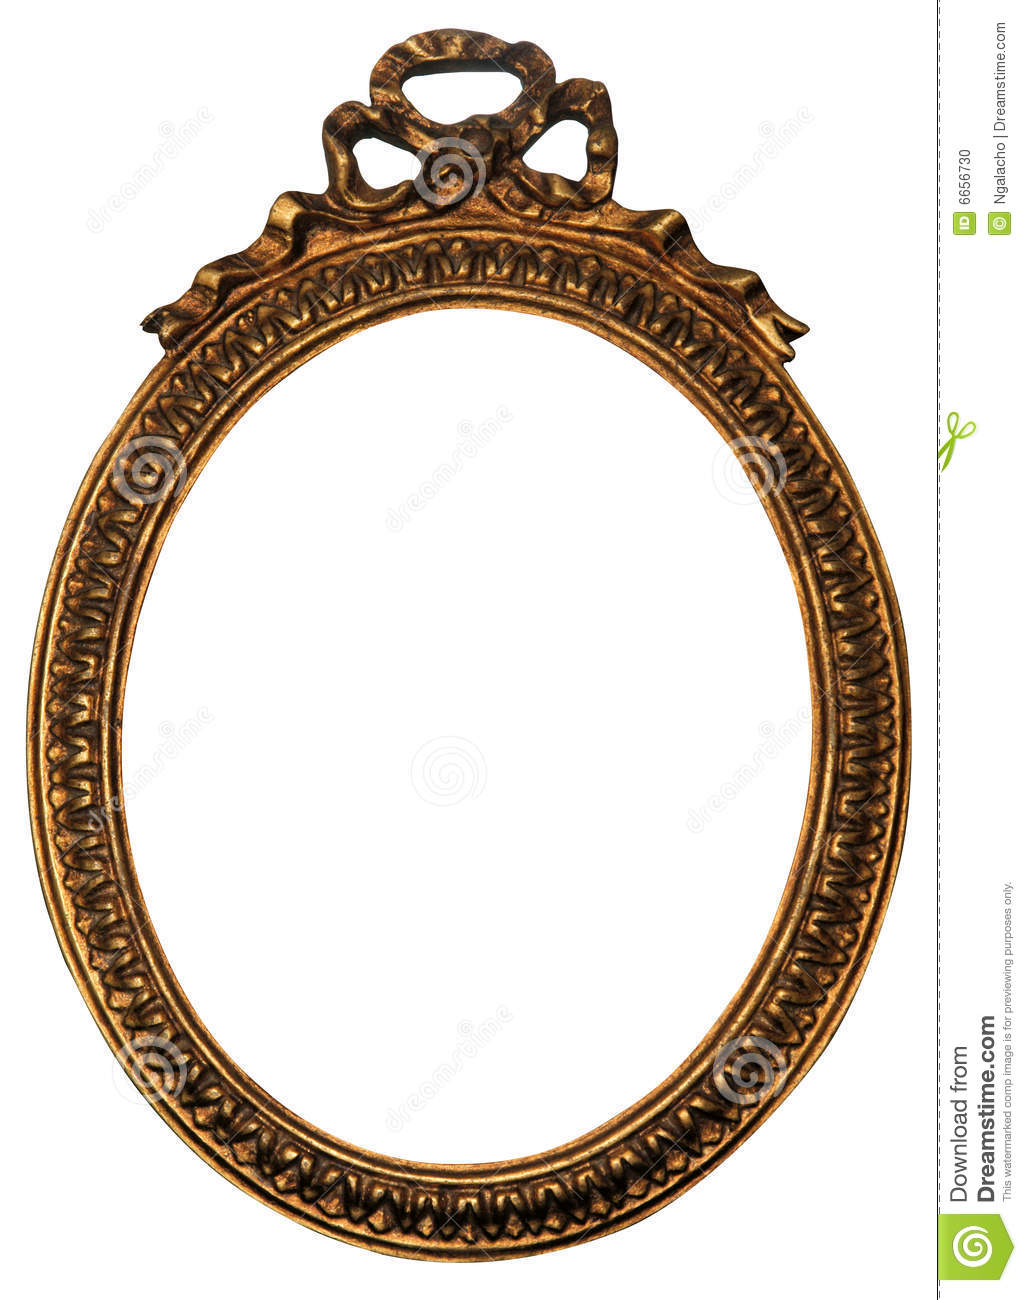 Wooden Big Hand Carved Mirror Frame 163643390 as well 16 Creative Diy Mirror Frame Ideas as well Old Window Frame moreover Chunky Old Wood Framed Mirrors besides Traditional Paneling. on rustic wood mirror frames